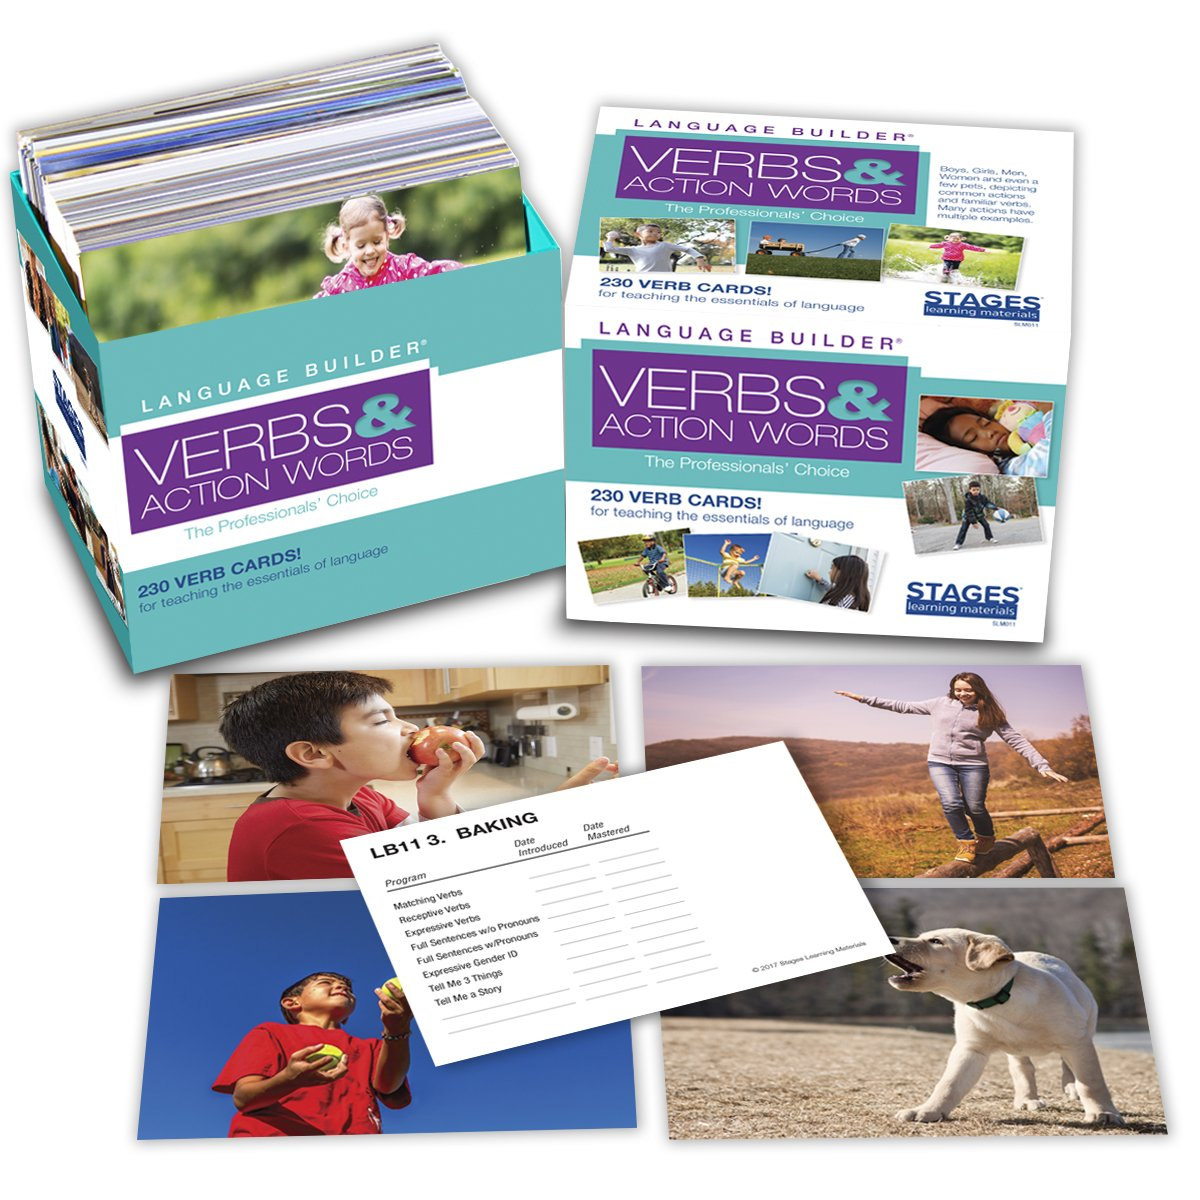 Stages Learning Materials Language Builder Verb Flash Cards Photo Vocabulary Autism Learning Products for Aba Therapy & Speech Articulation by Stages Learning (Image #2)